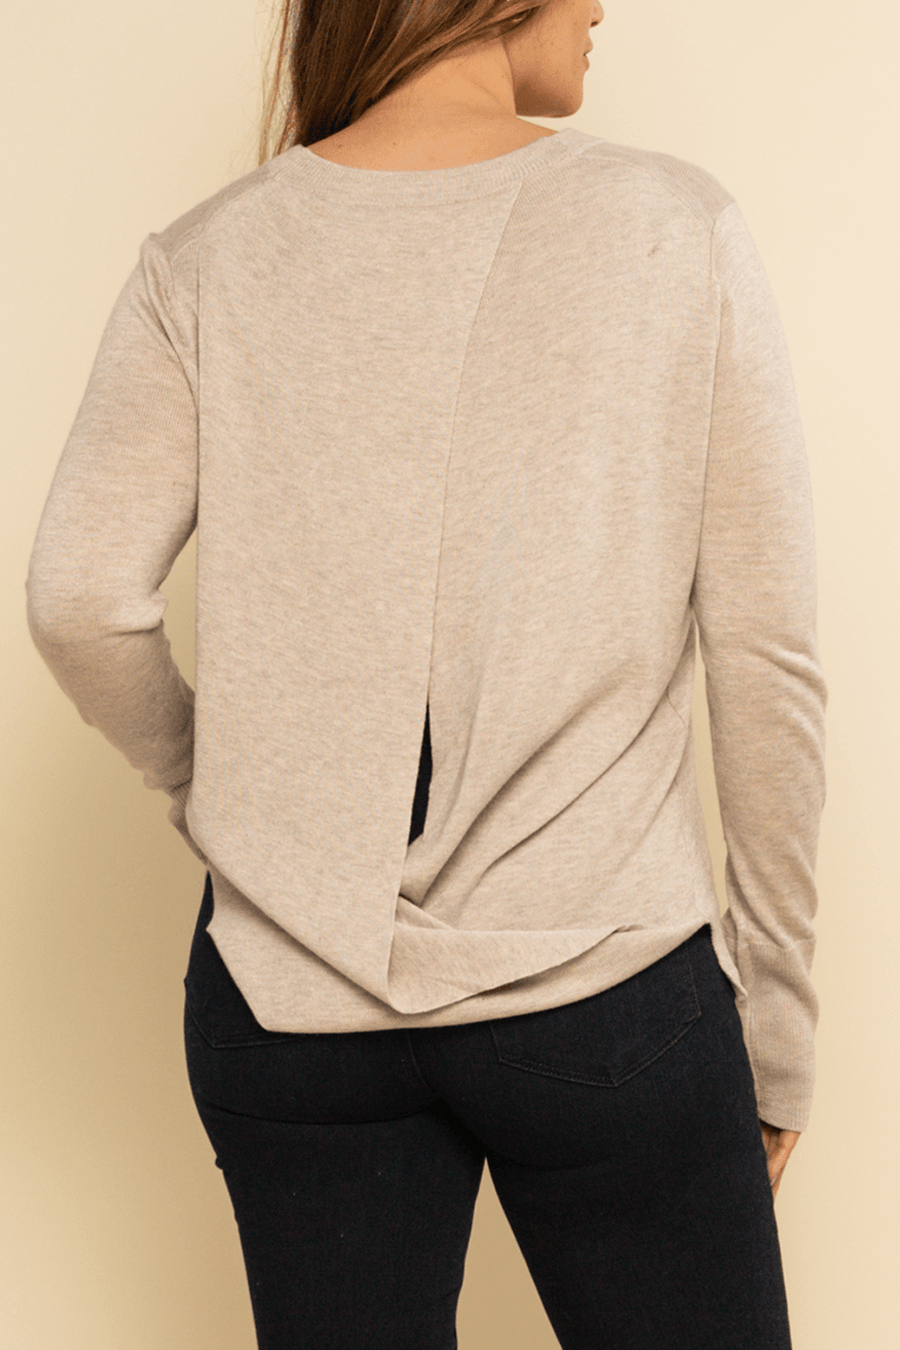 Jackson Hole Sweater - Oatmeal - Shore